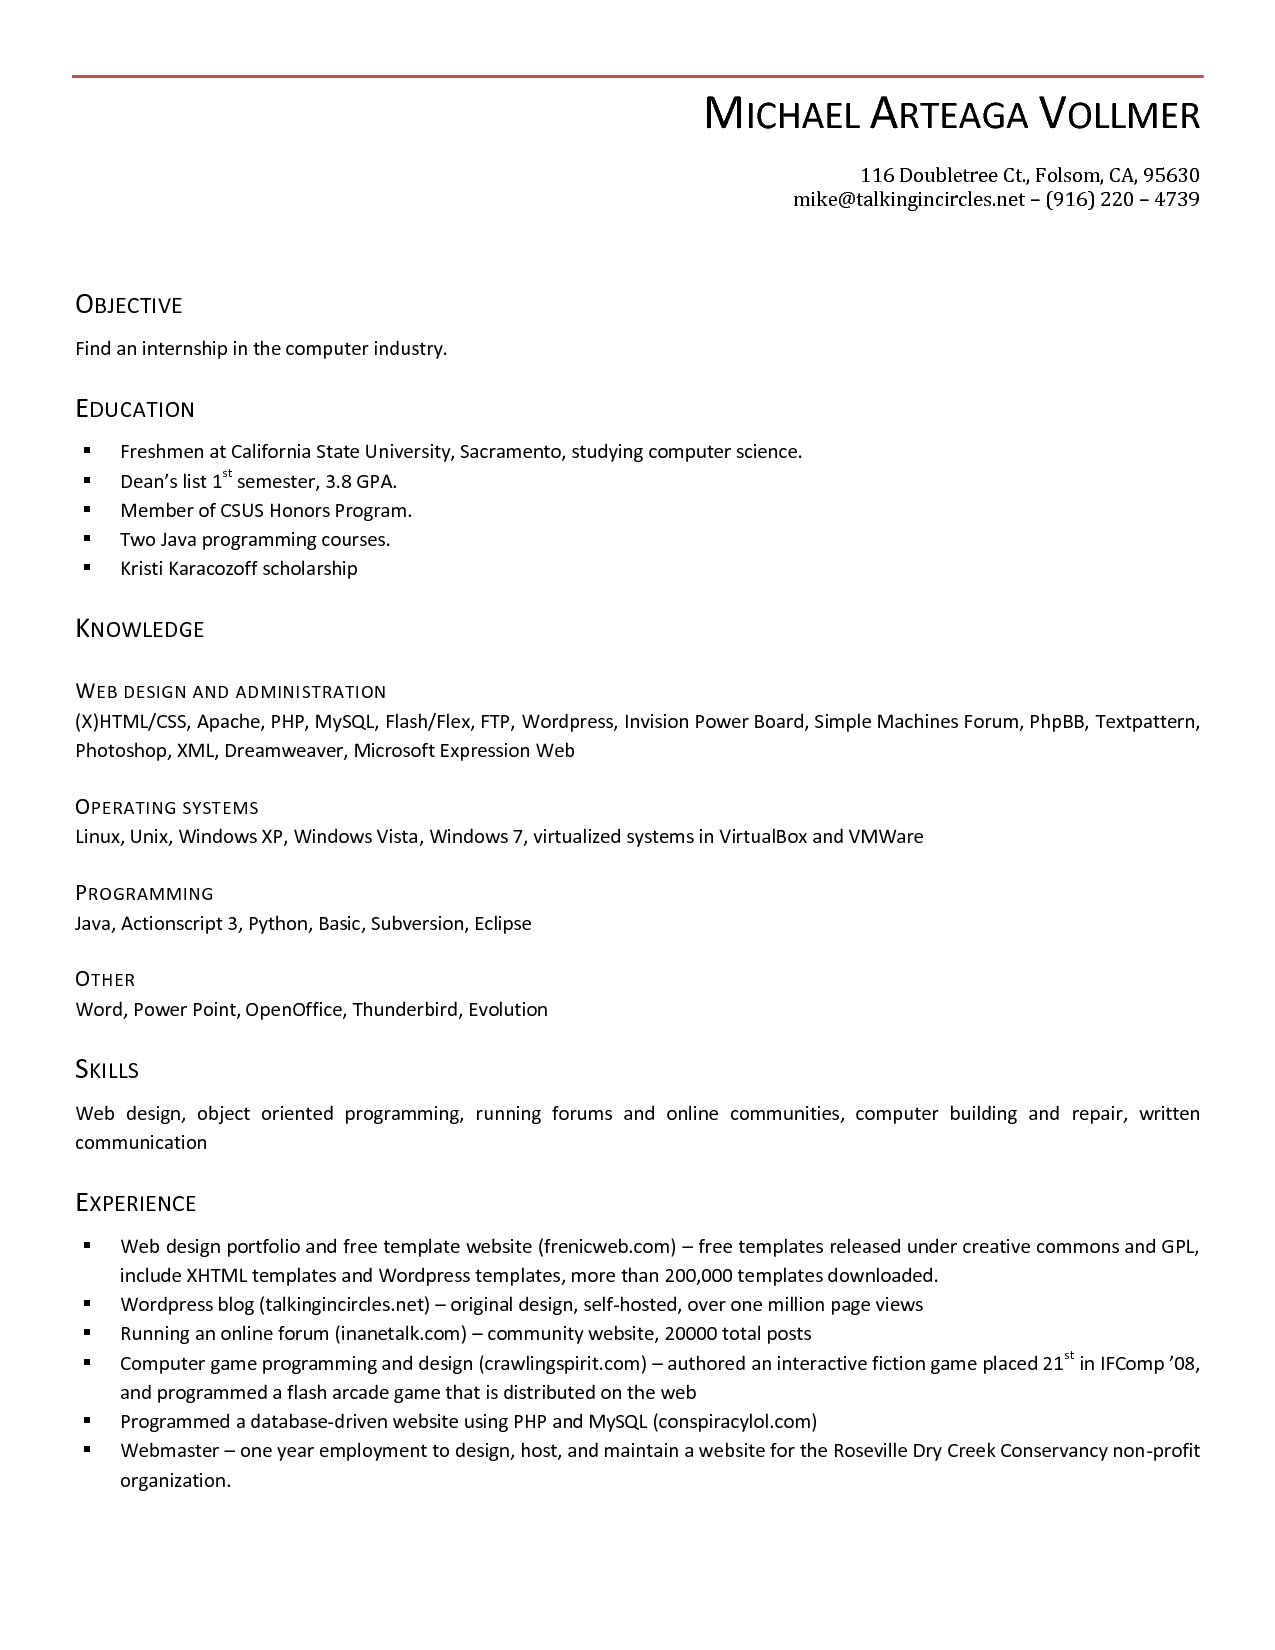 Resume Templates Open Office Resume Template Wwwbaakleenlibrarycom - Resume template open office free